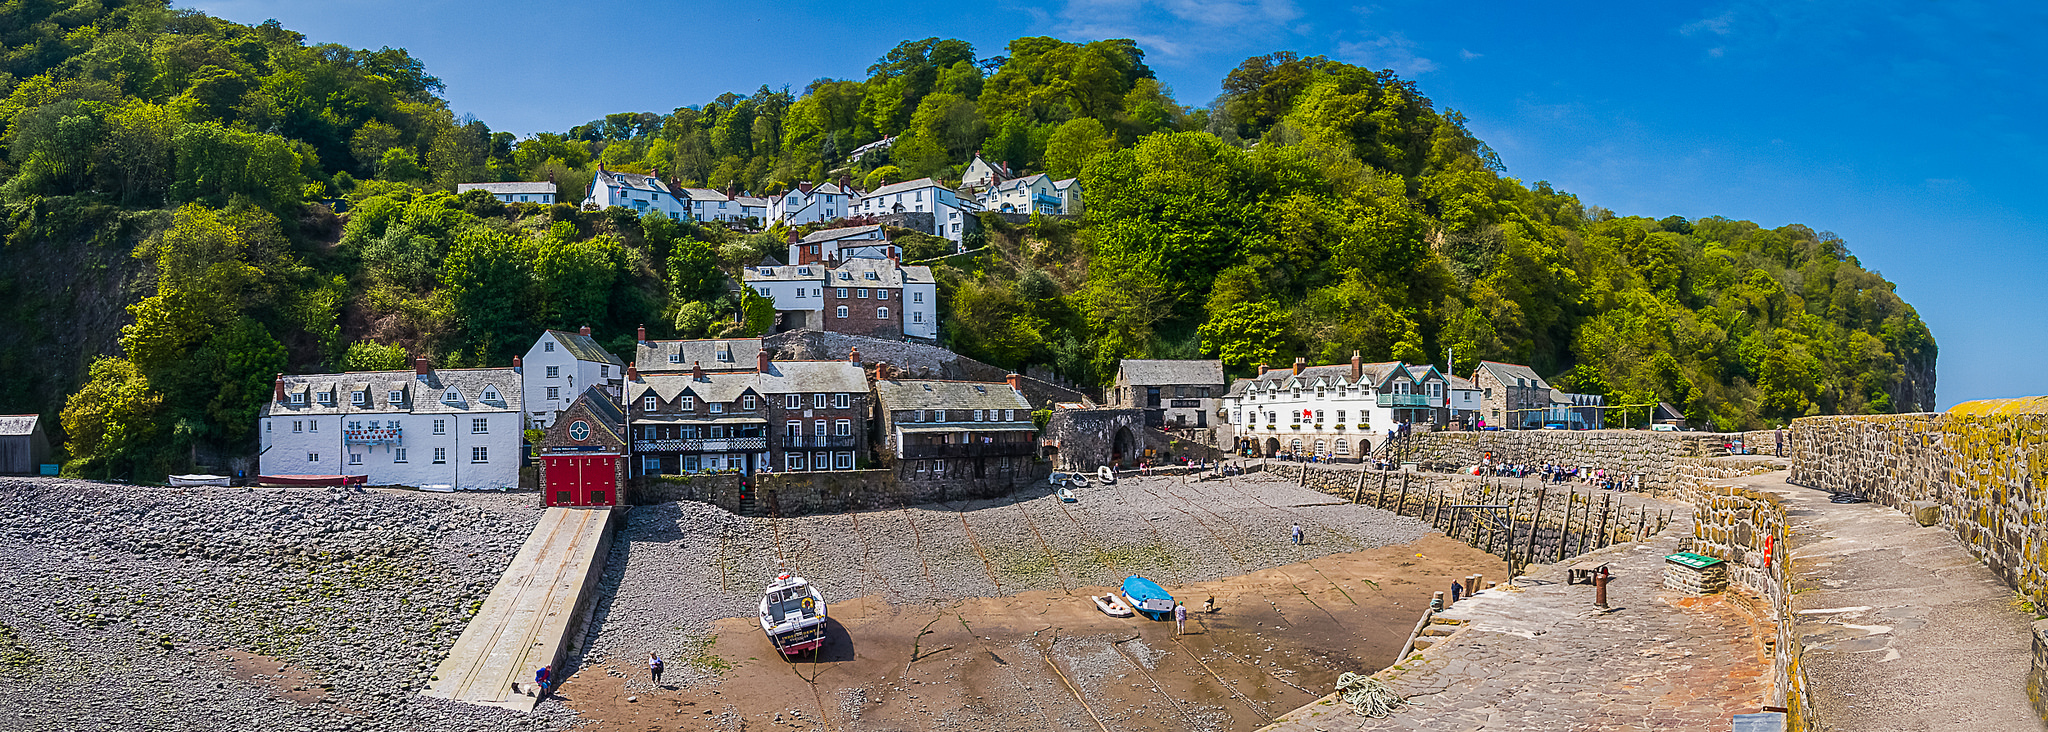 Clovelly, Cornwall by Peter Stokes.jpg